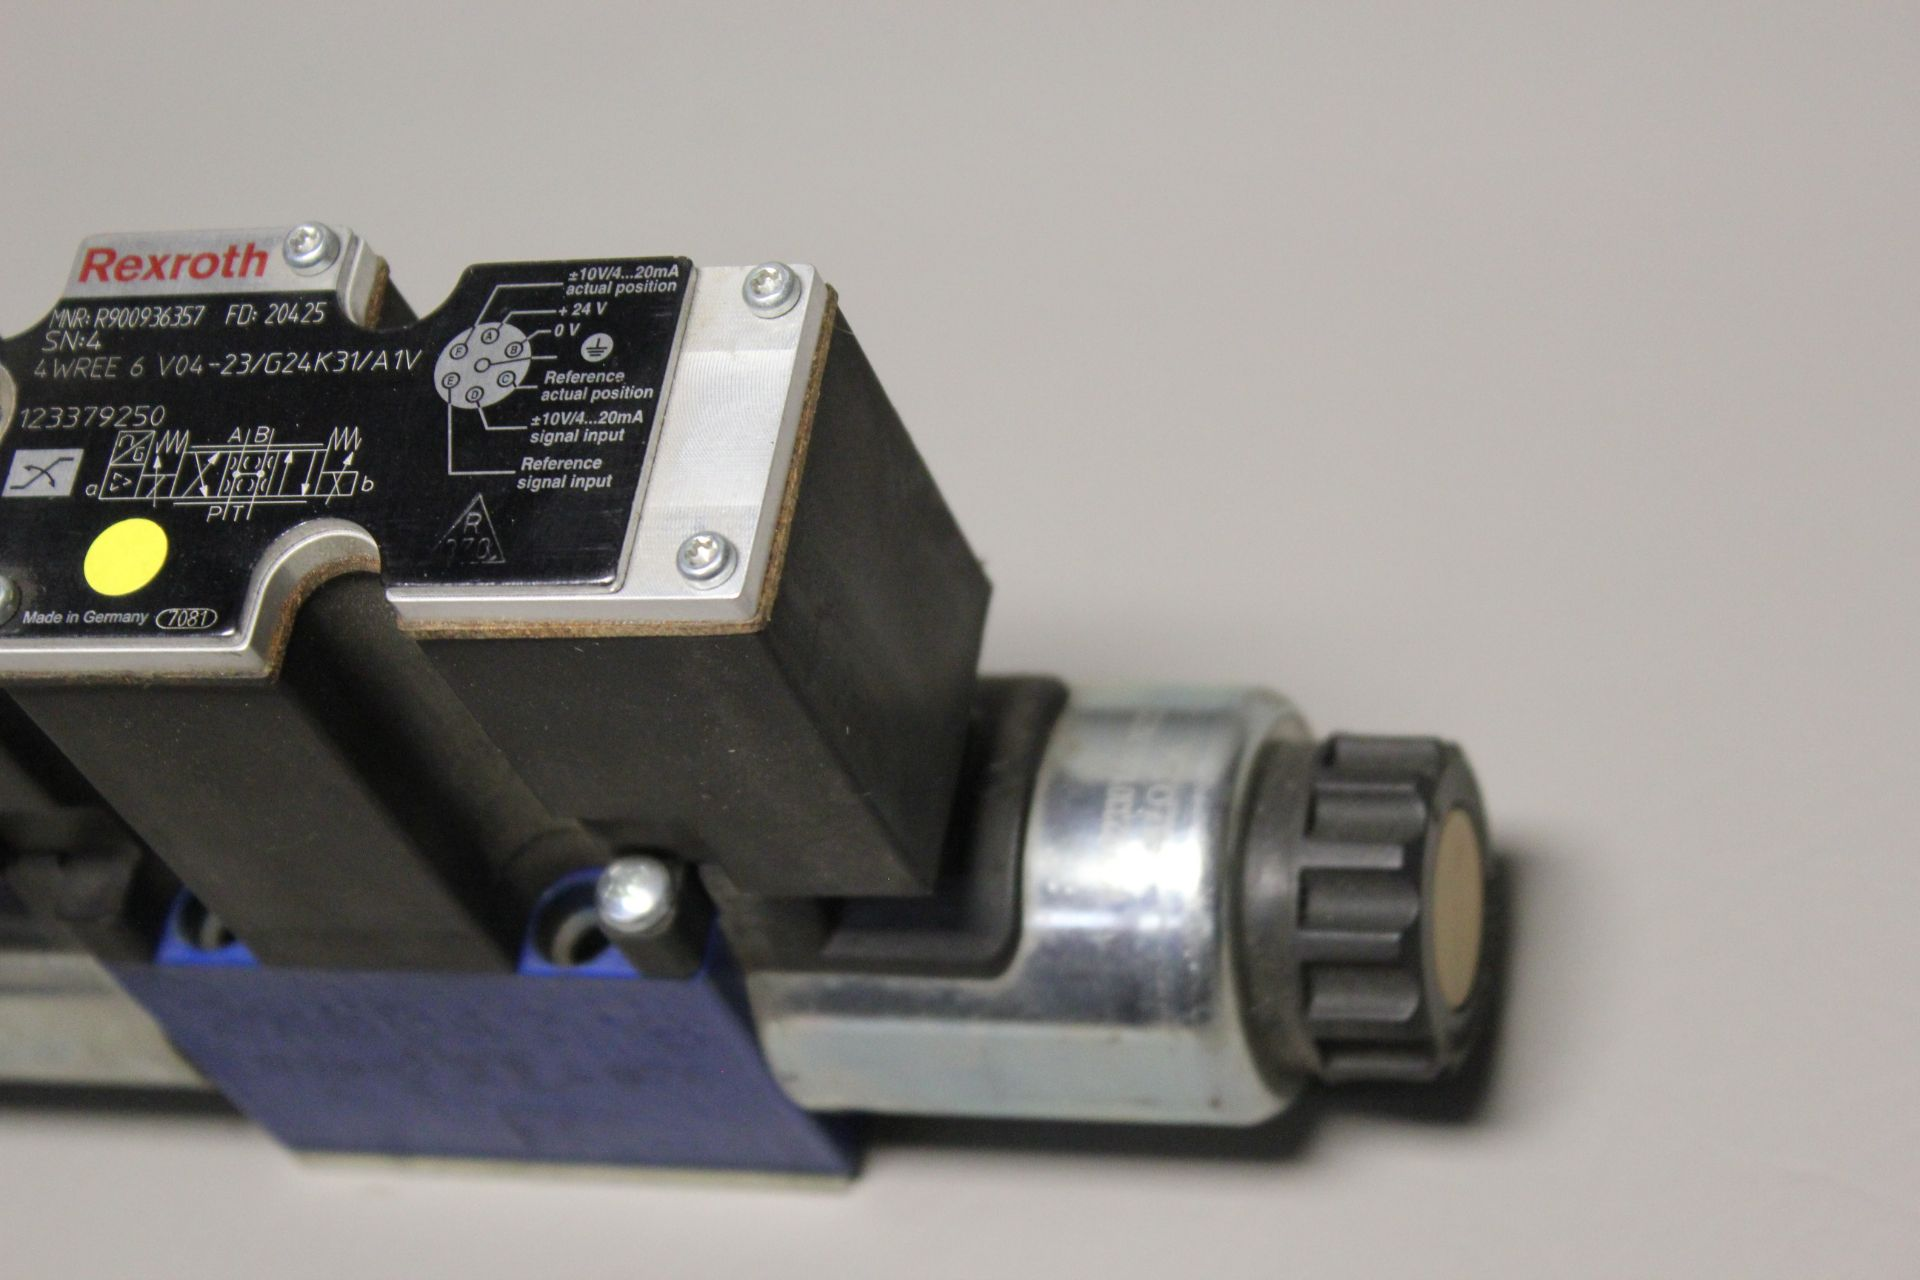 NEW REXROTH HYDRAULIC PROPORTIONAL VALVE - Image 4 of 6